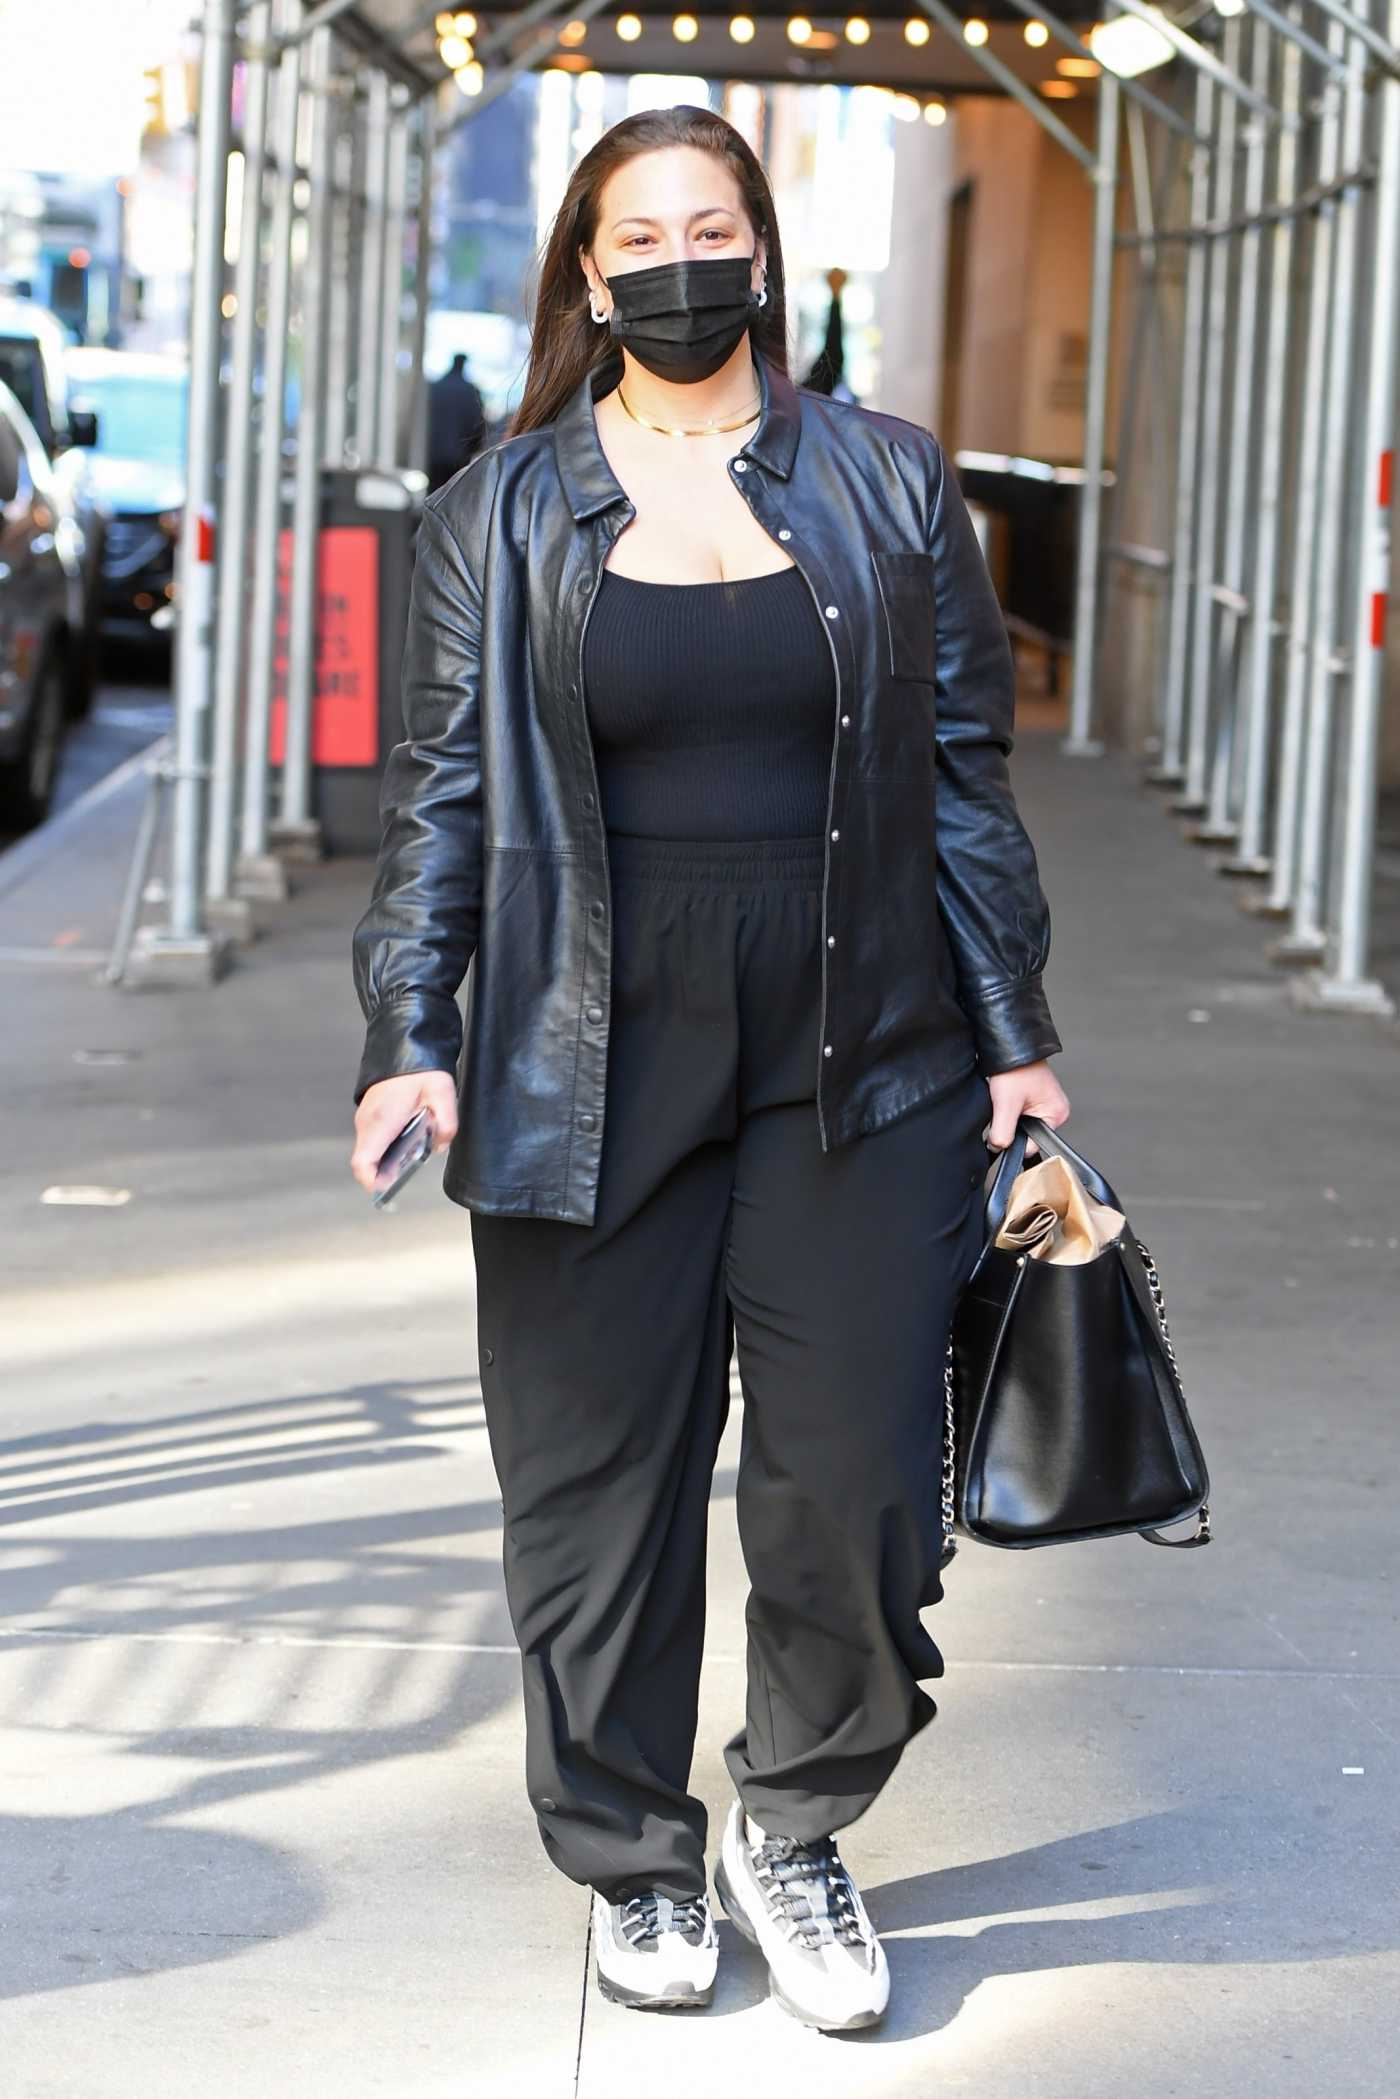 Ashley Graham in a Black Outfit Arrives at the Michael Kors Fashion Show in New York 04/08/2021